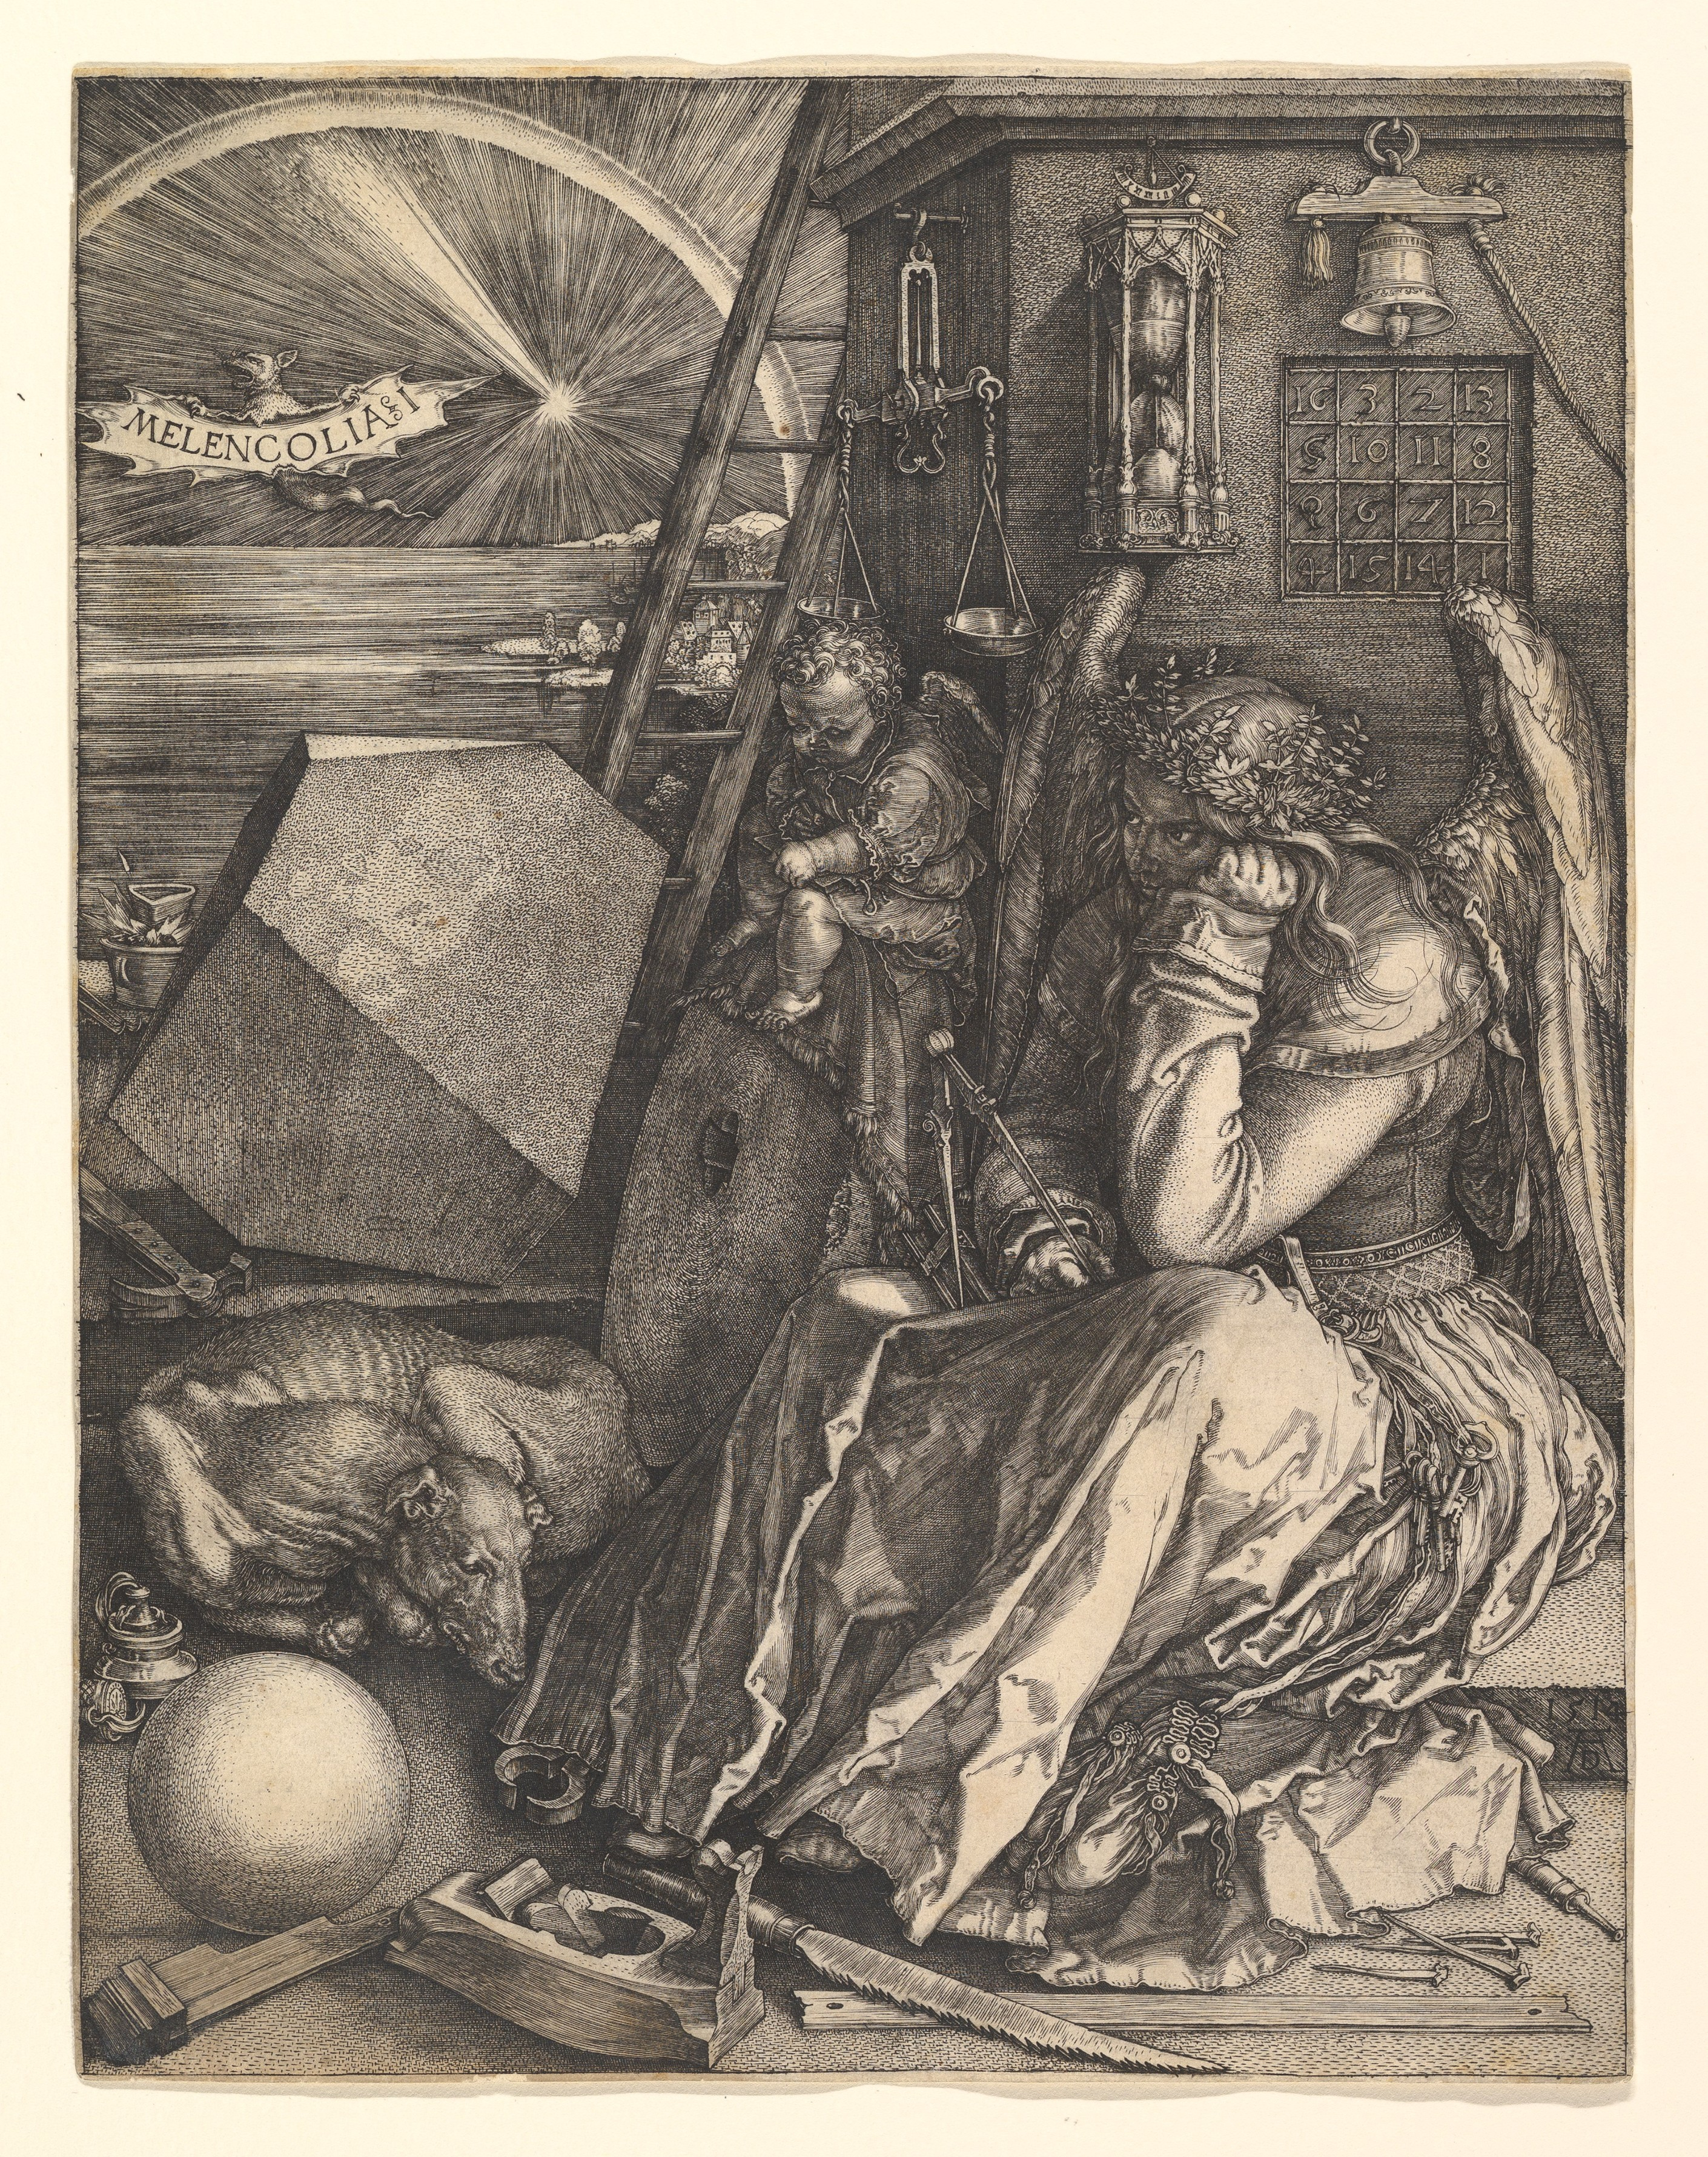 Melancolia by Albrecht Dürer (print, Germany, 1514. Image courtesy of the Metropolitan Museum of New York.)